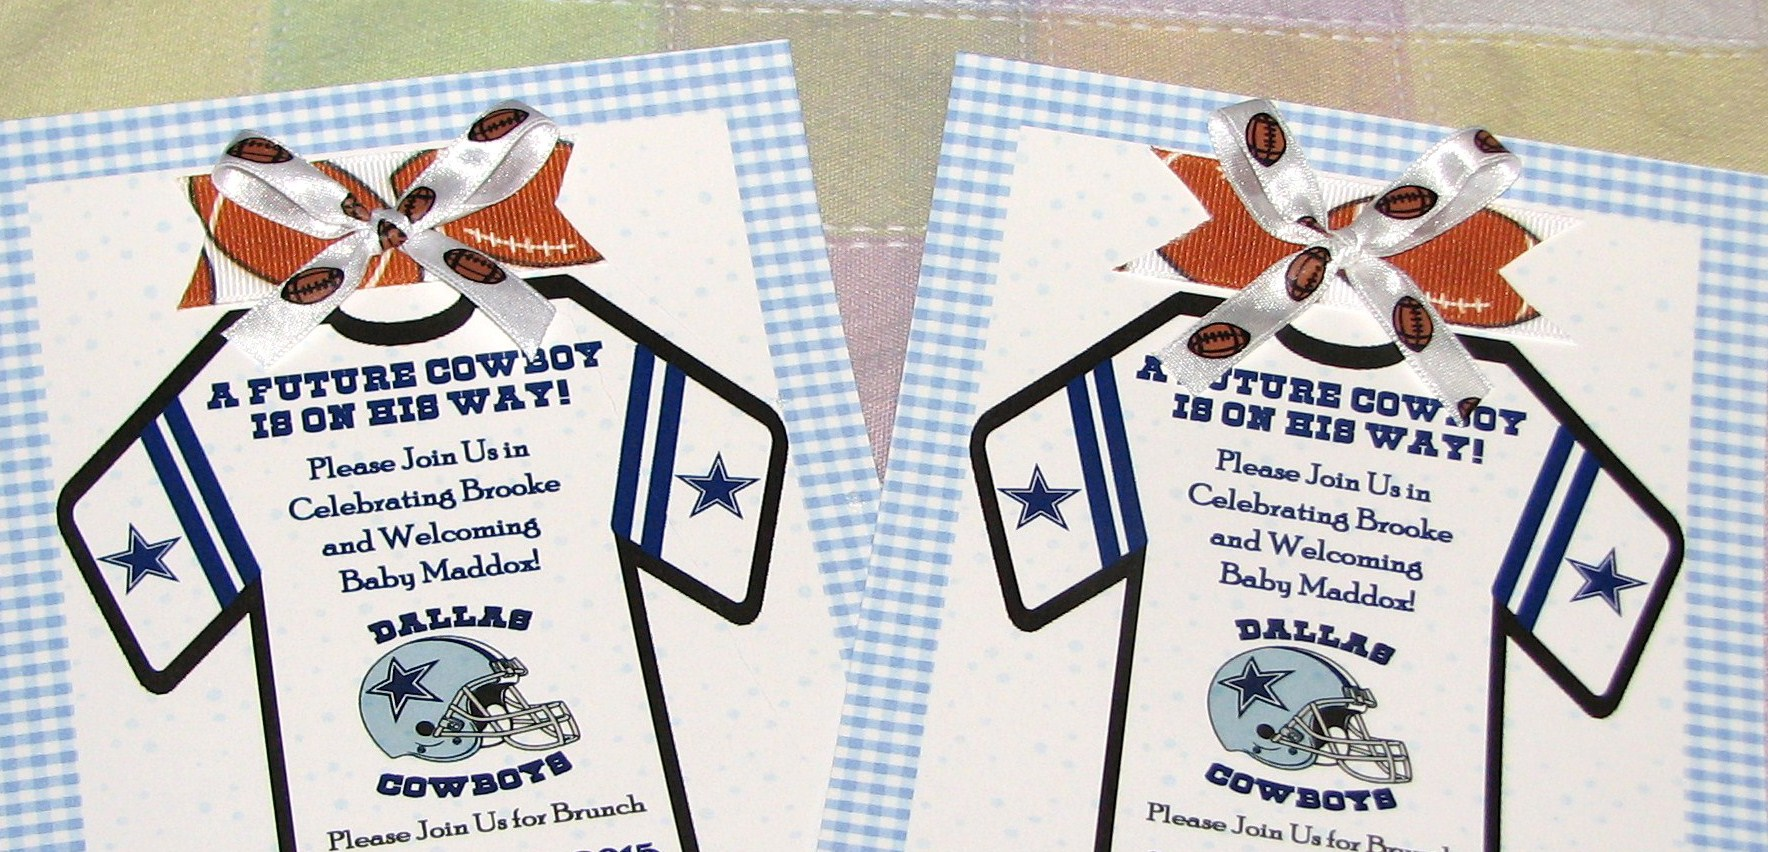 Dallas Cowboys Baby Shower Invitations is one of our best ideas you might choose for invitation design